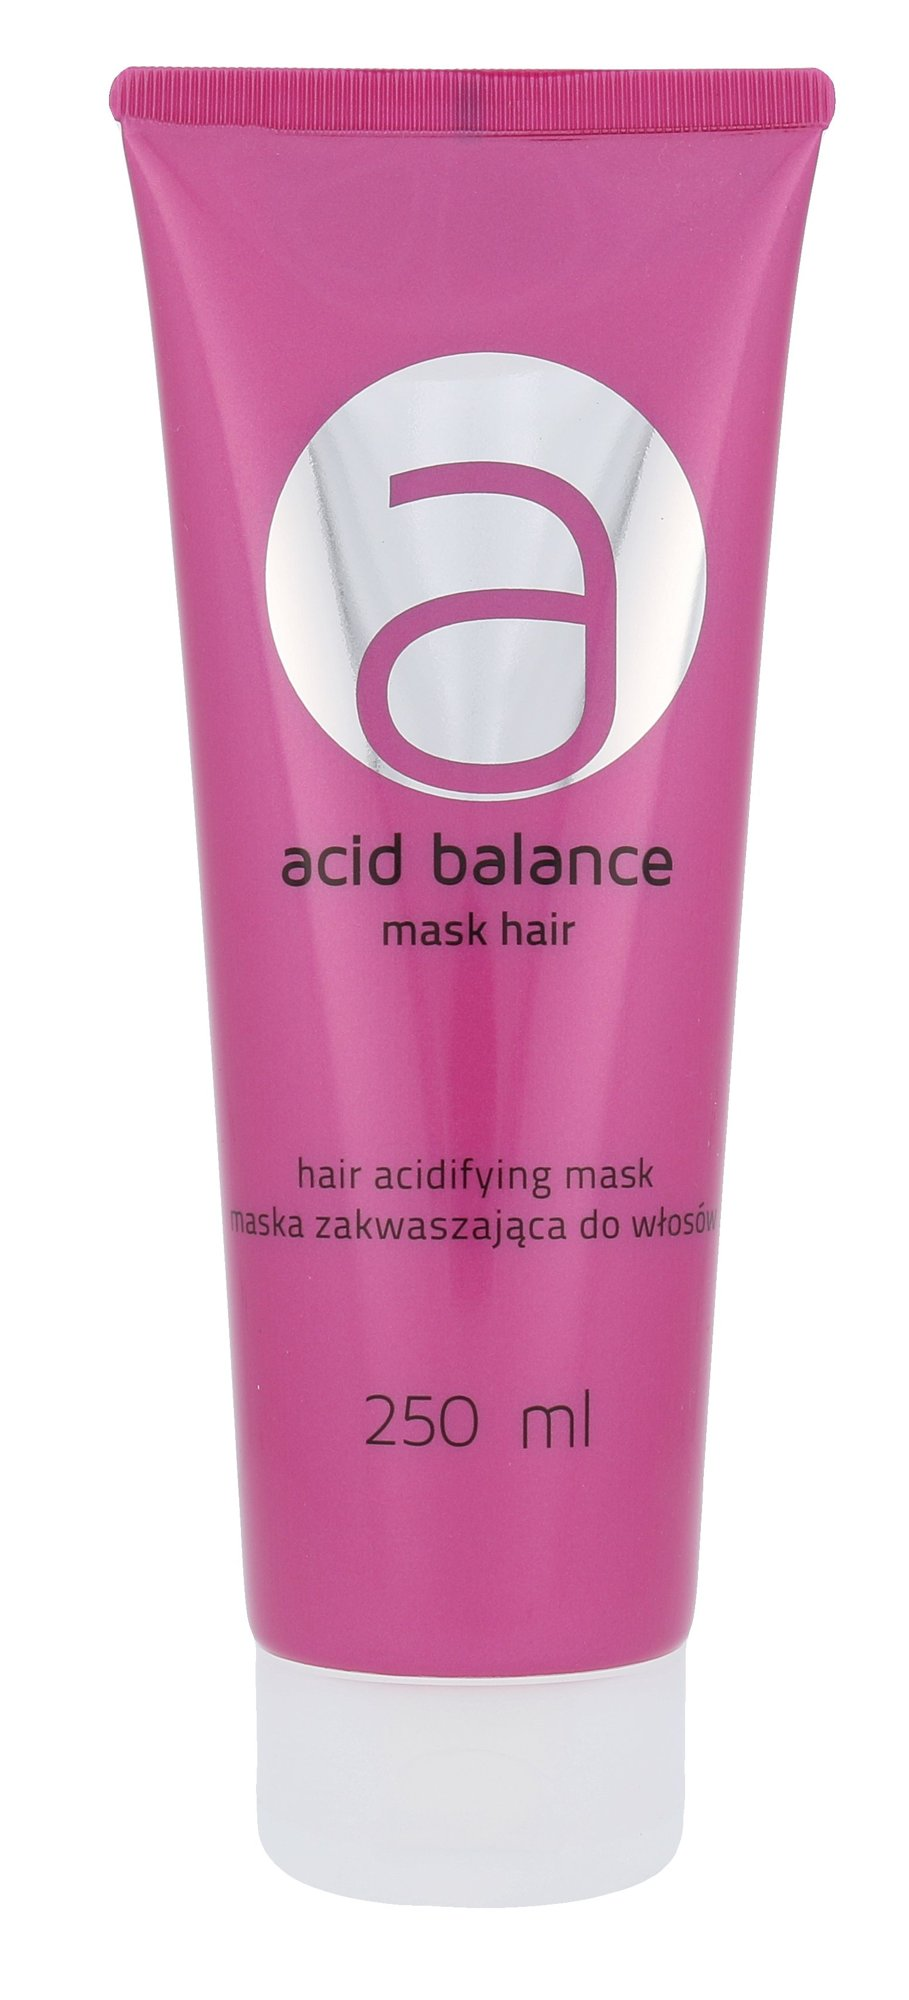 Stapiz Acid Balance Acidifying Mask Cosmetic 250ml